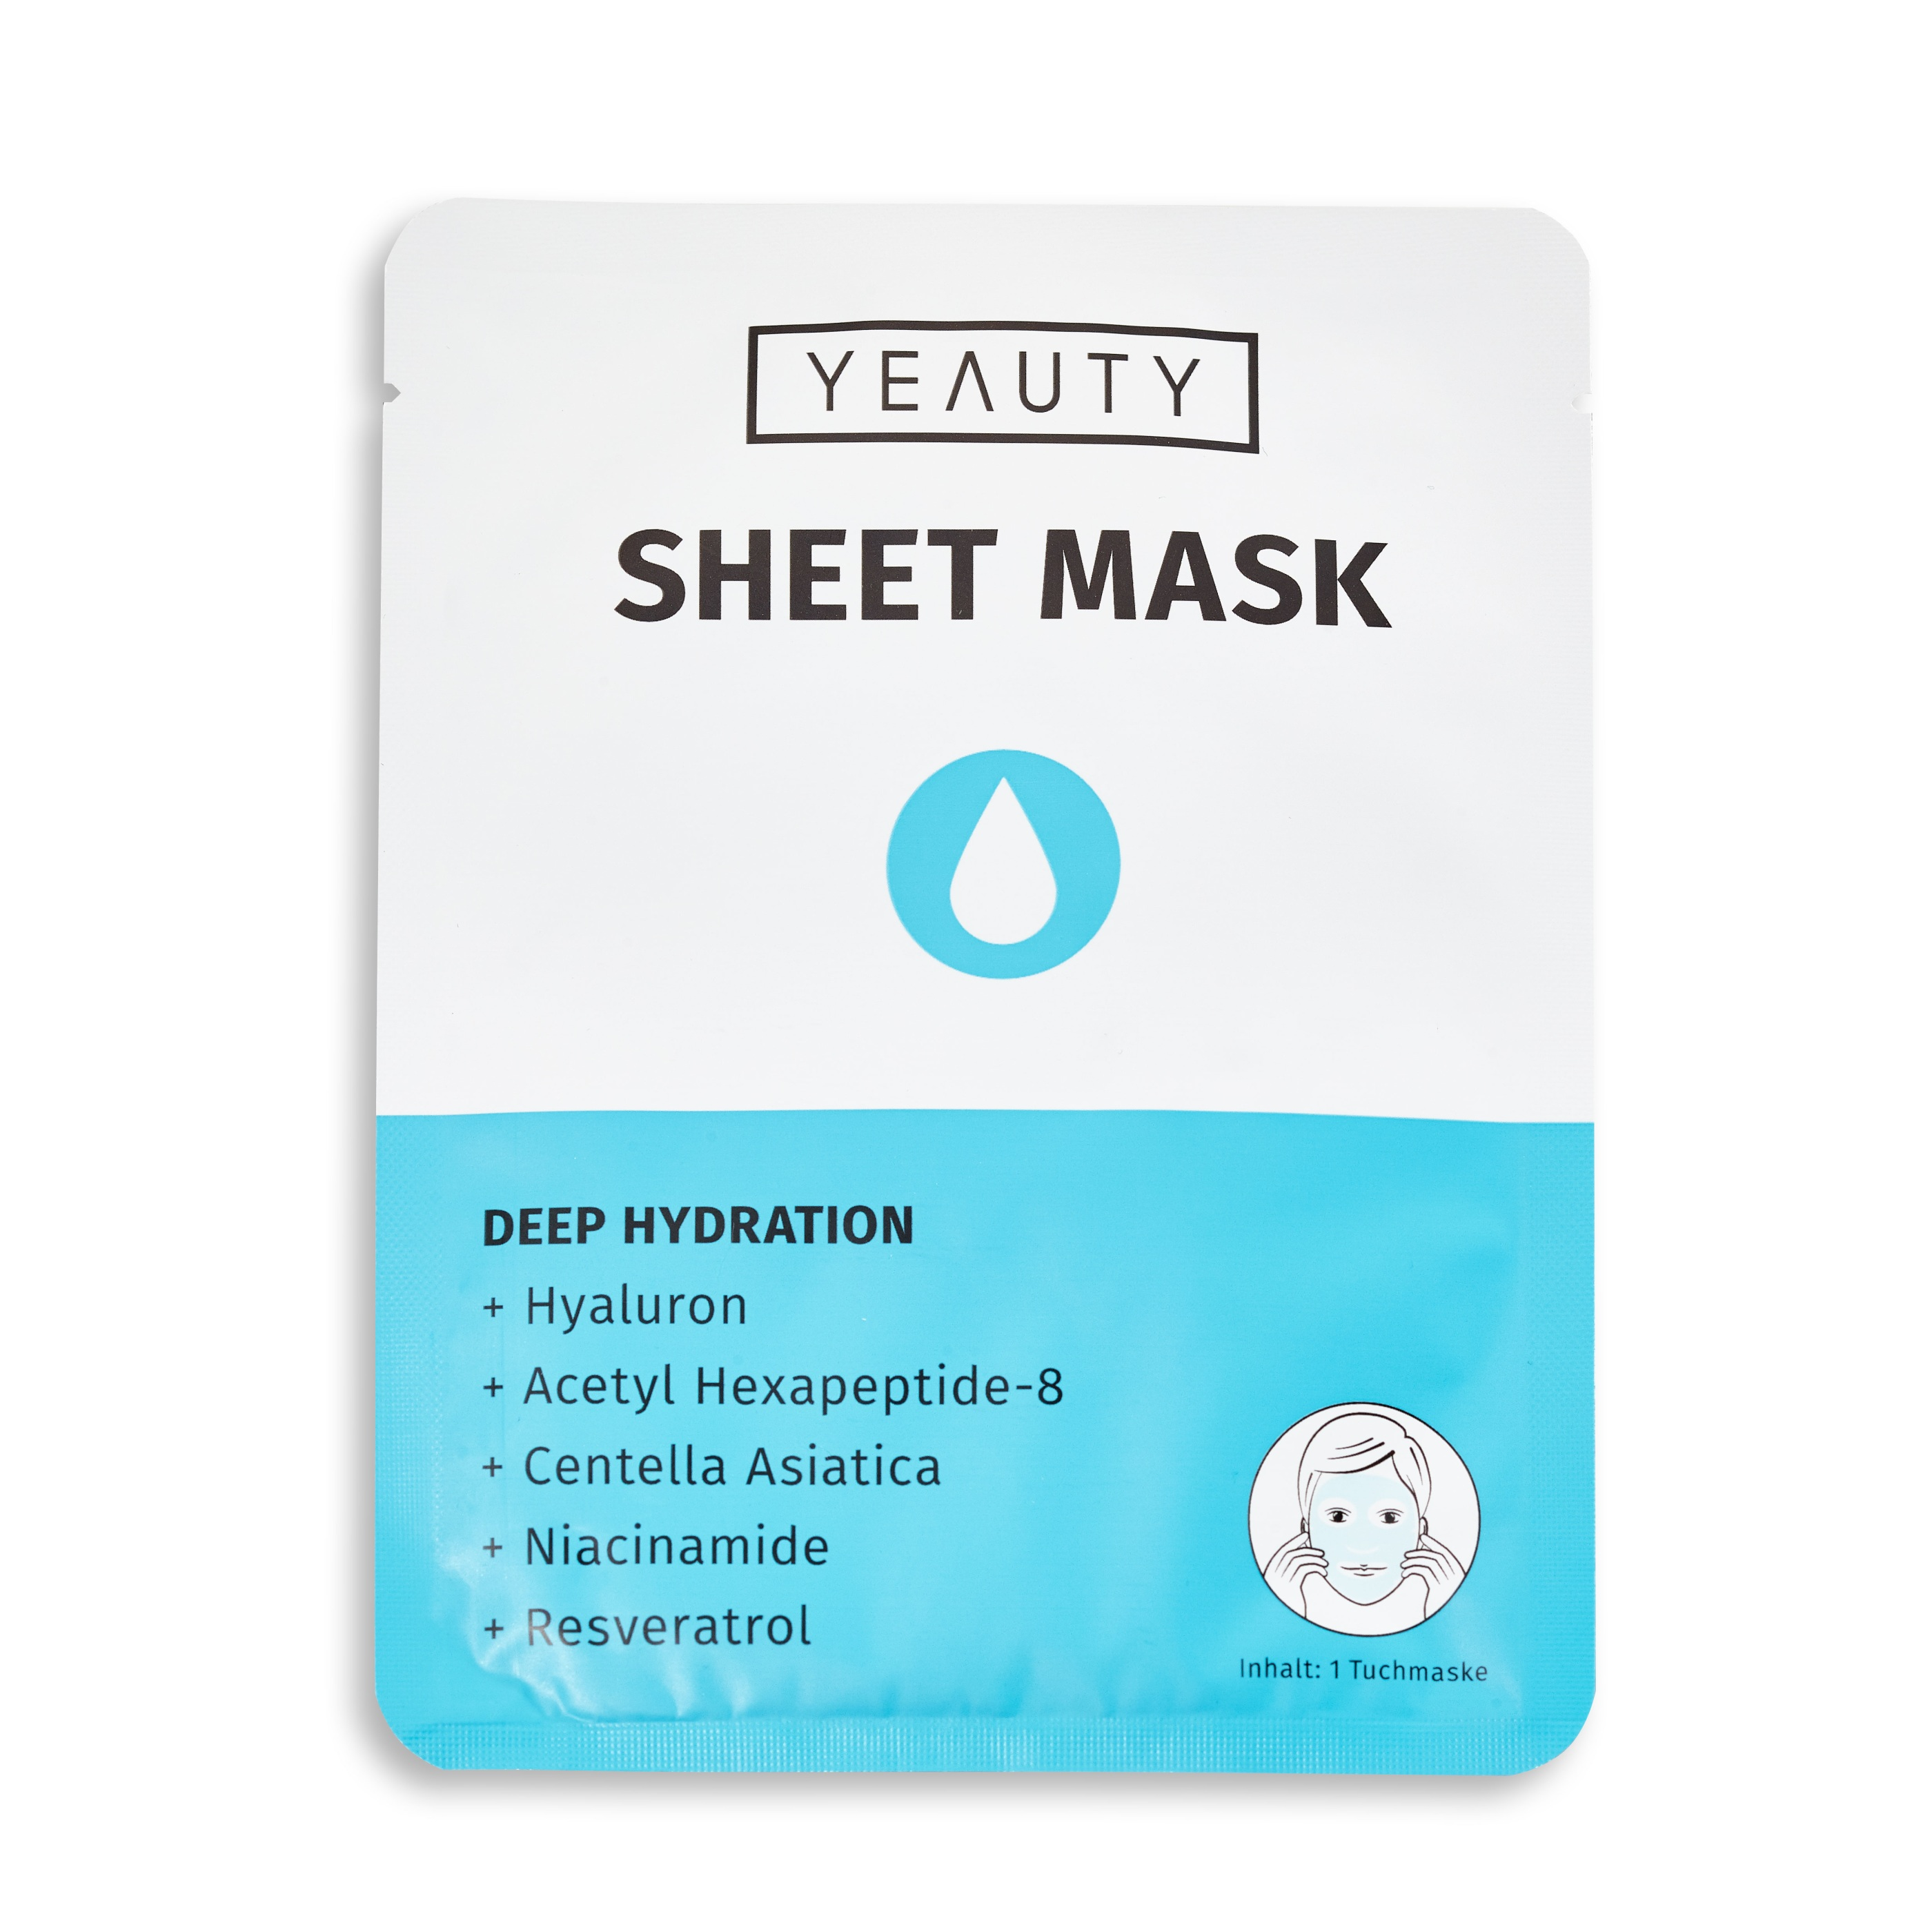 YEAUTY_DEEP-HYDRATION-SHEET-MASK_Frontansicht_300dpi_rgb_isolated (1)